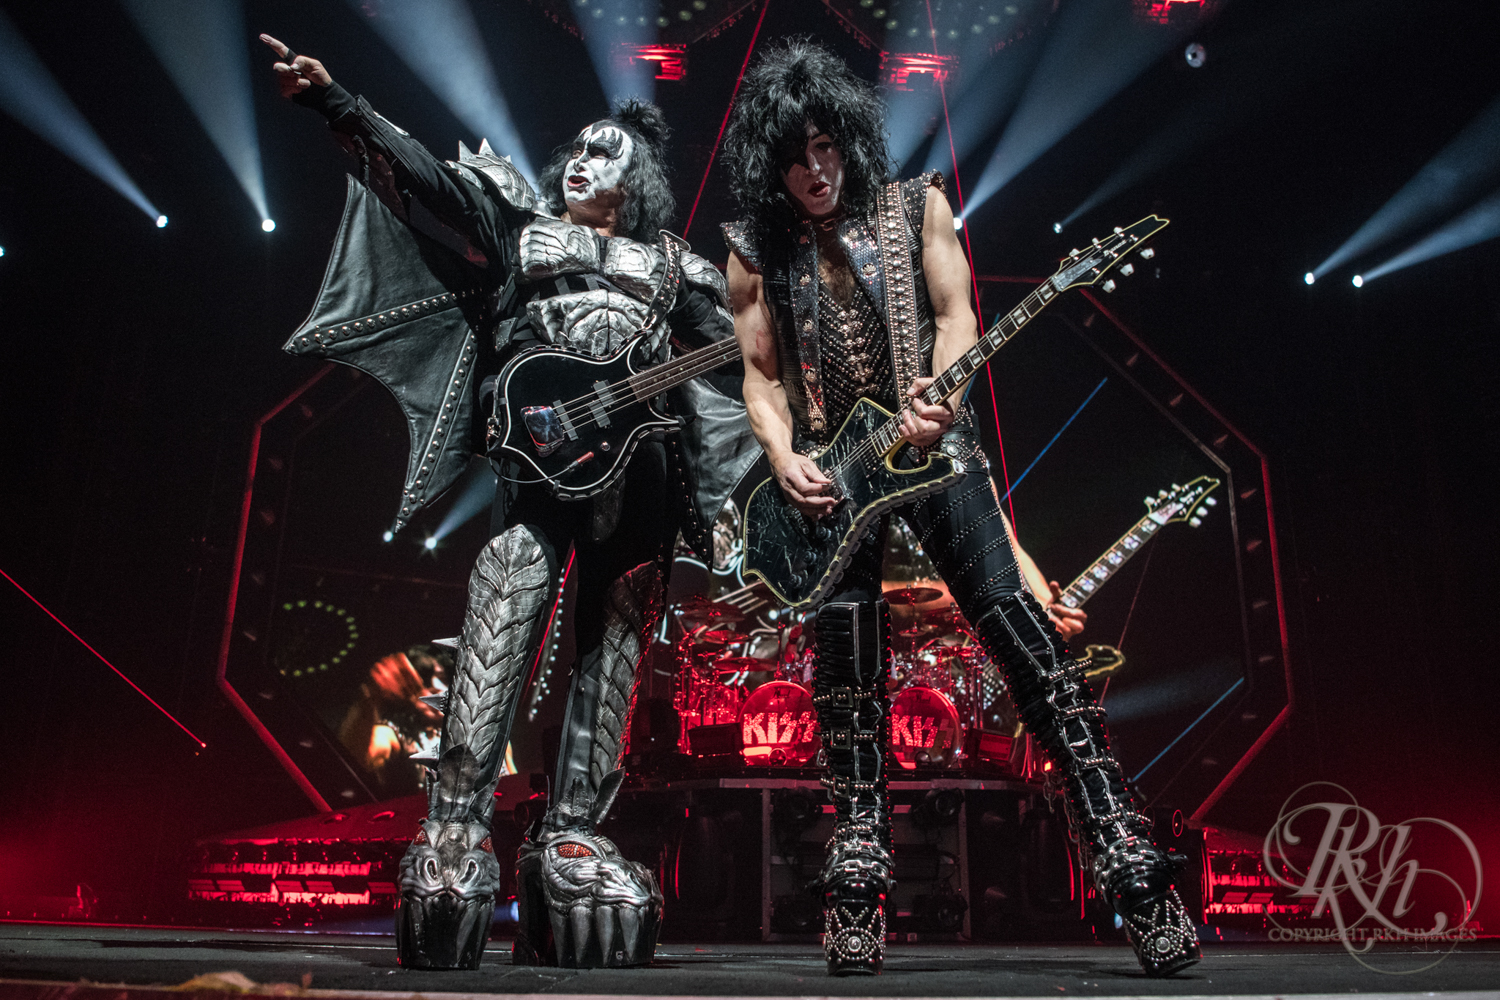 Kiss - End of the Road Tour - Target Center - Minneapolis - Concert Photography - RKH Images  (12 of 12).jpg